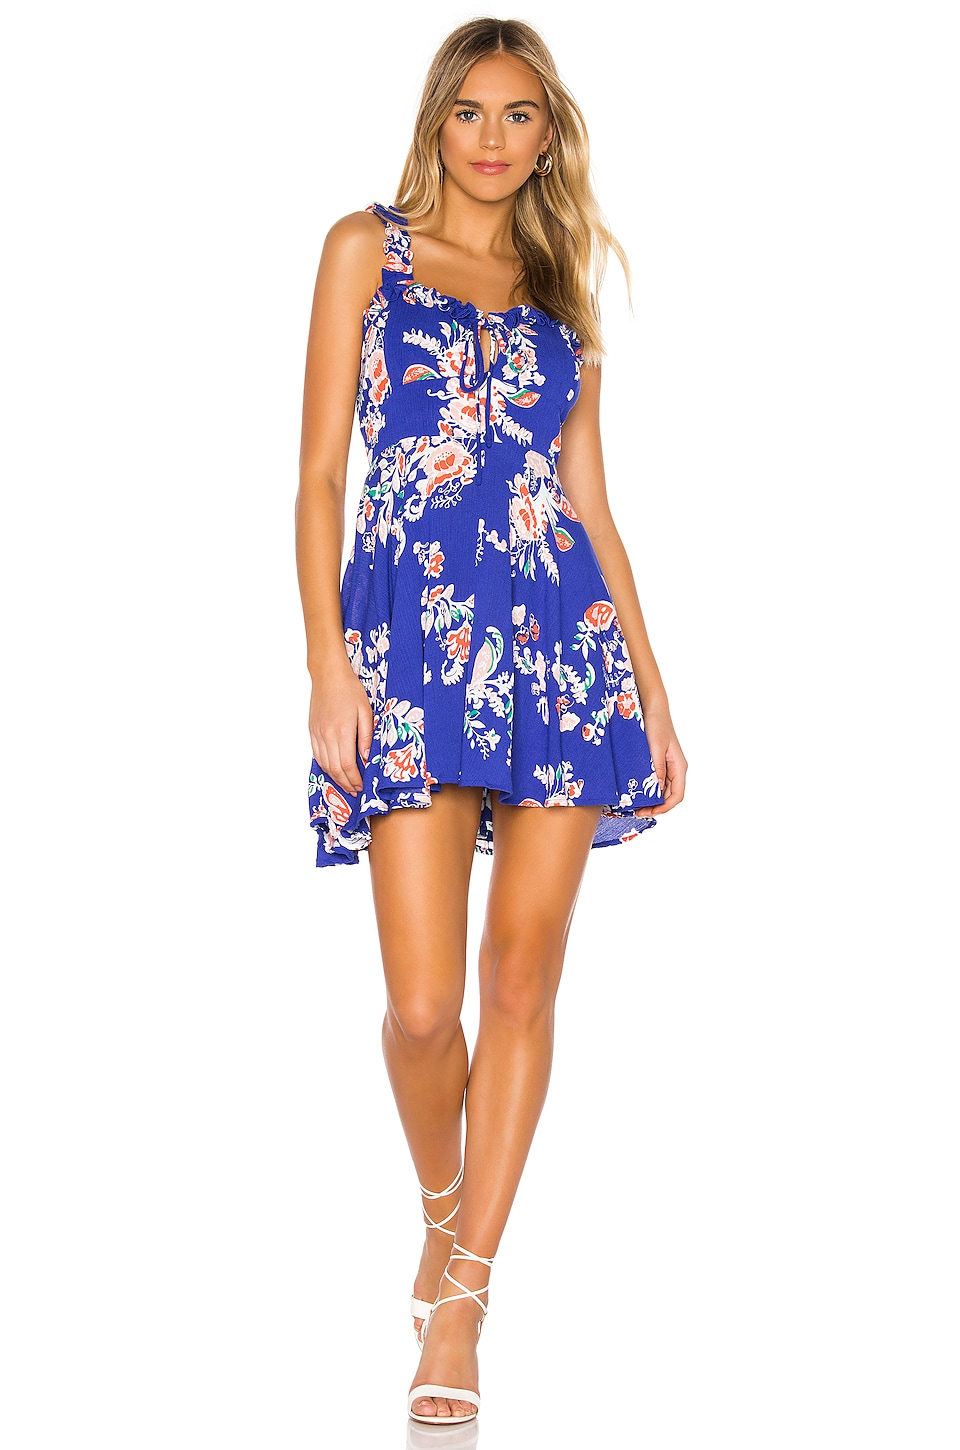 Cleobella Pippa Dress in Blue Gardenia